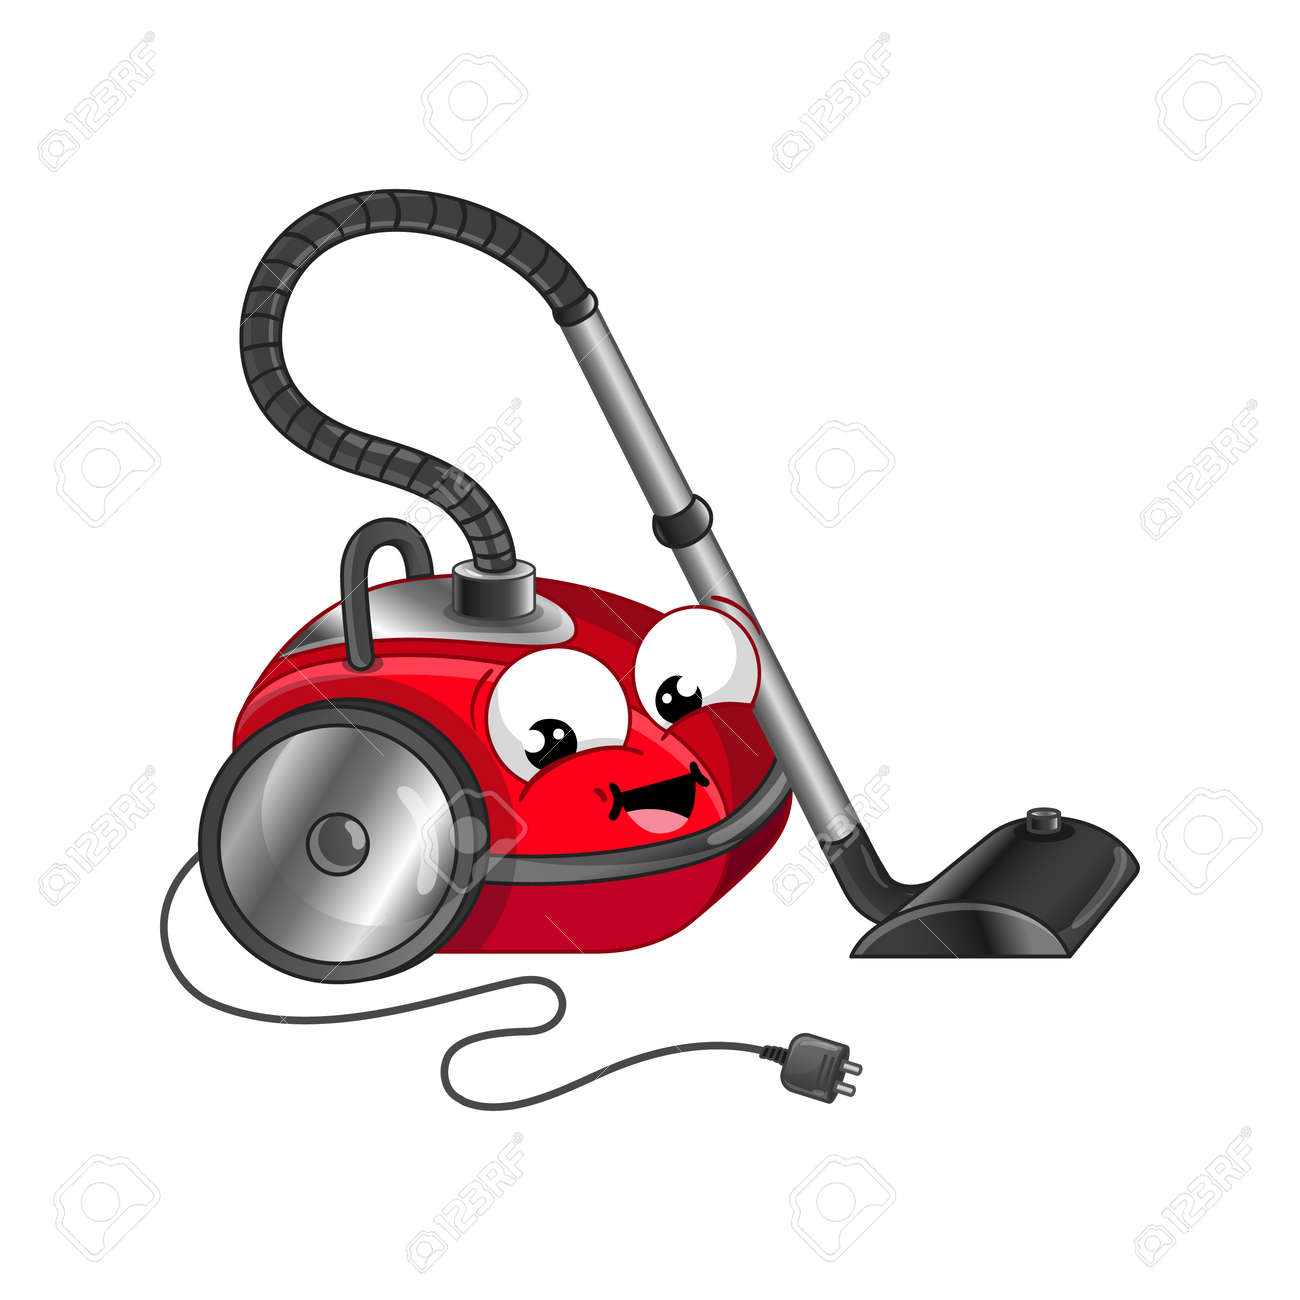 Funny Vacuum Cleaner Cartoon Character Stock Photo Picture And Royalty Free Image Image 102511304